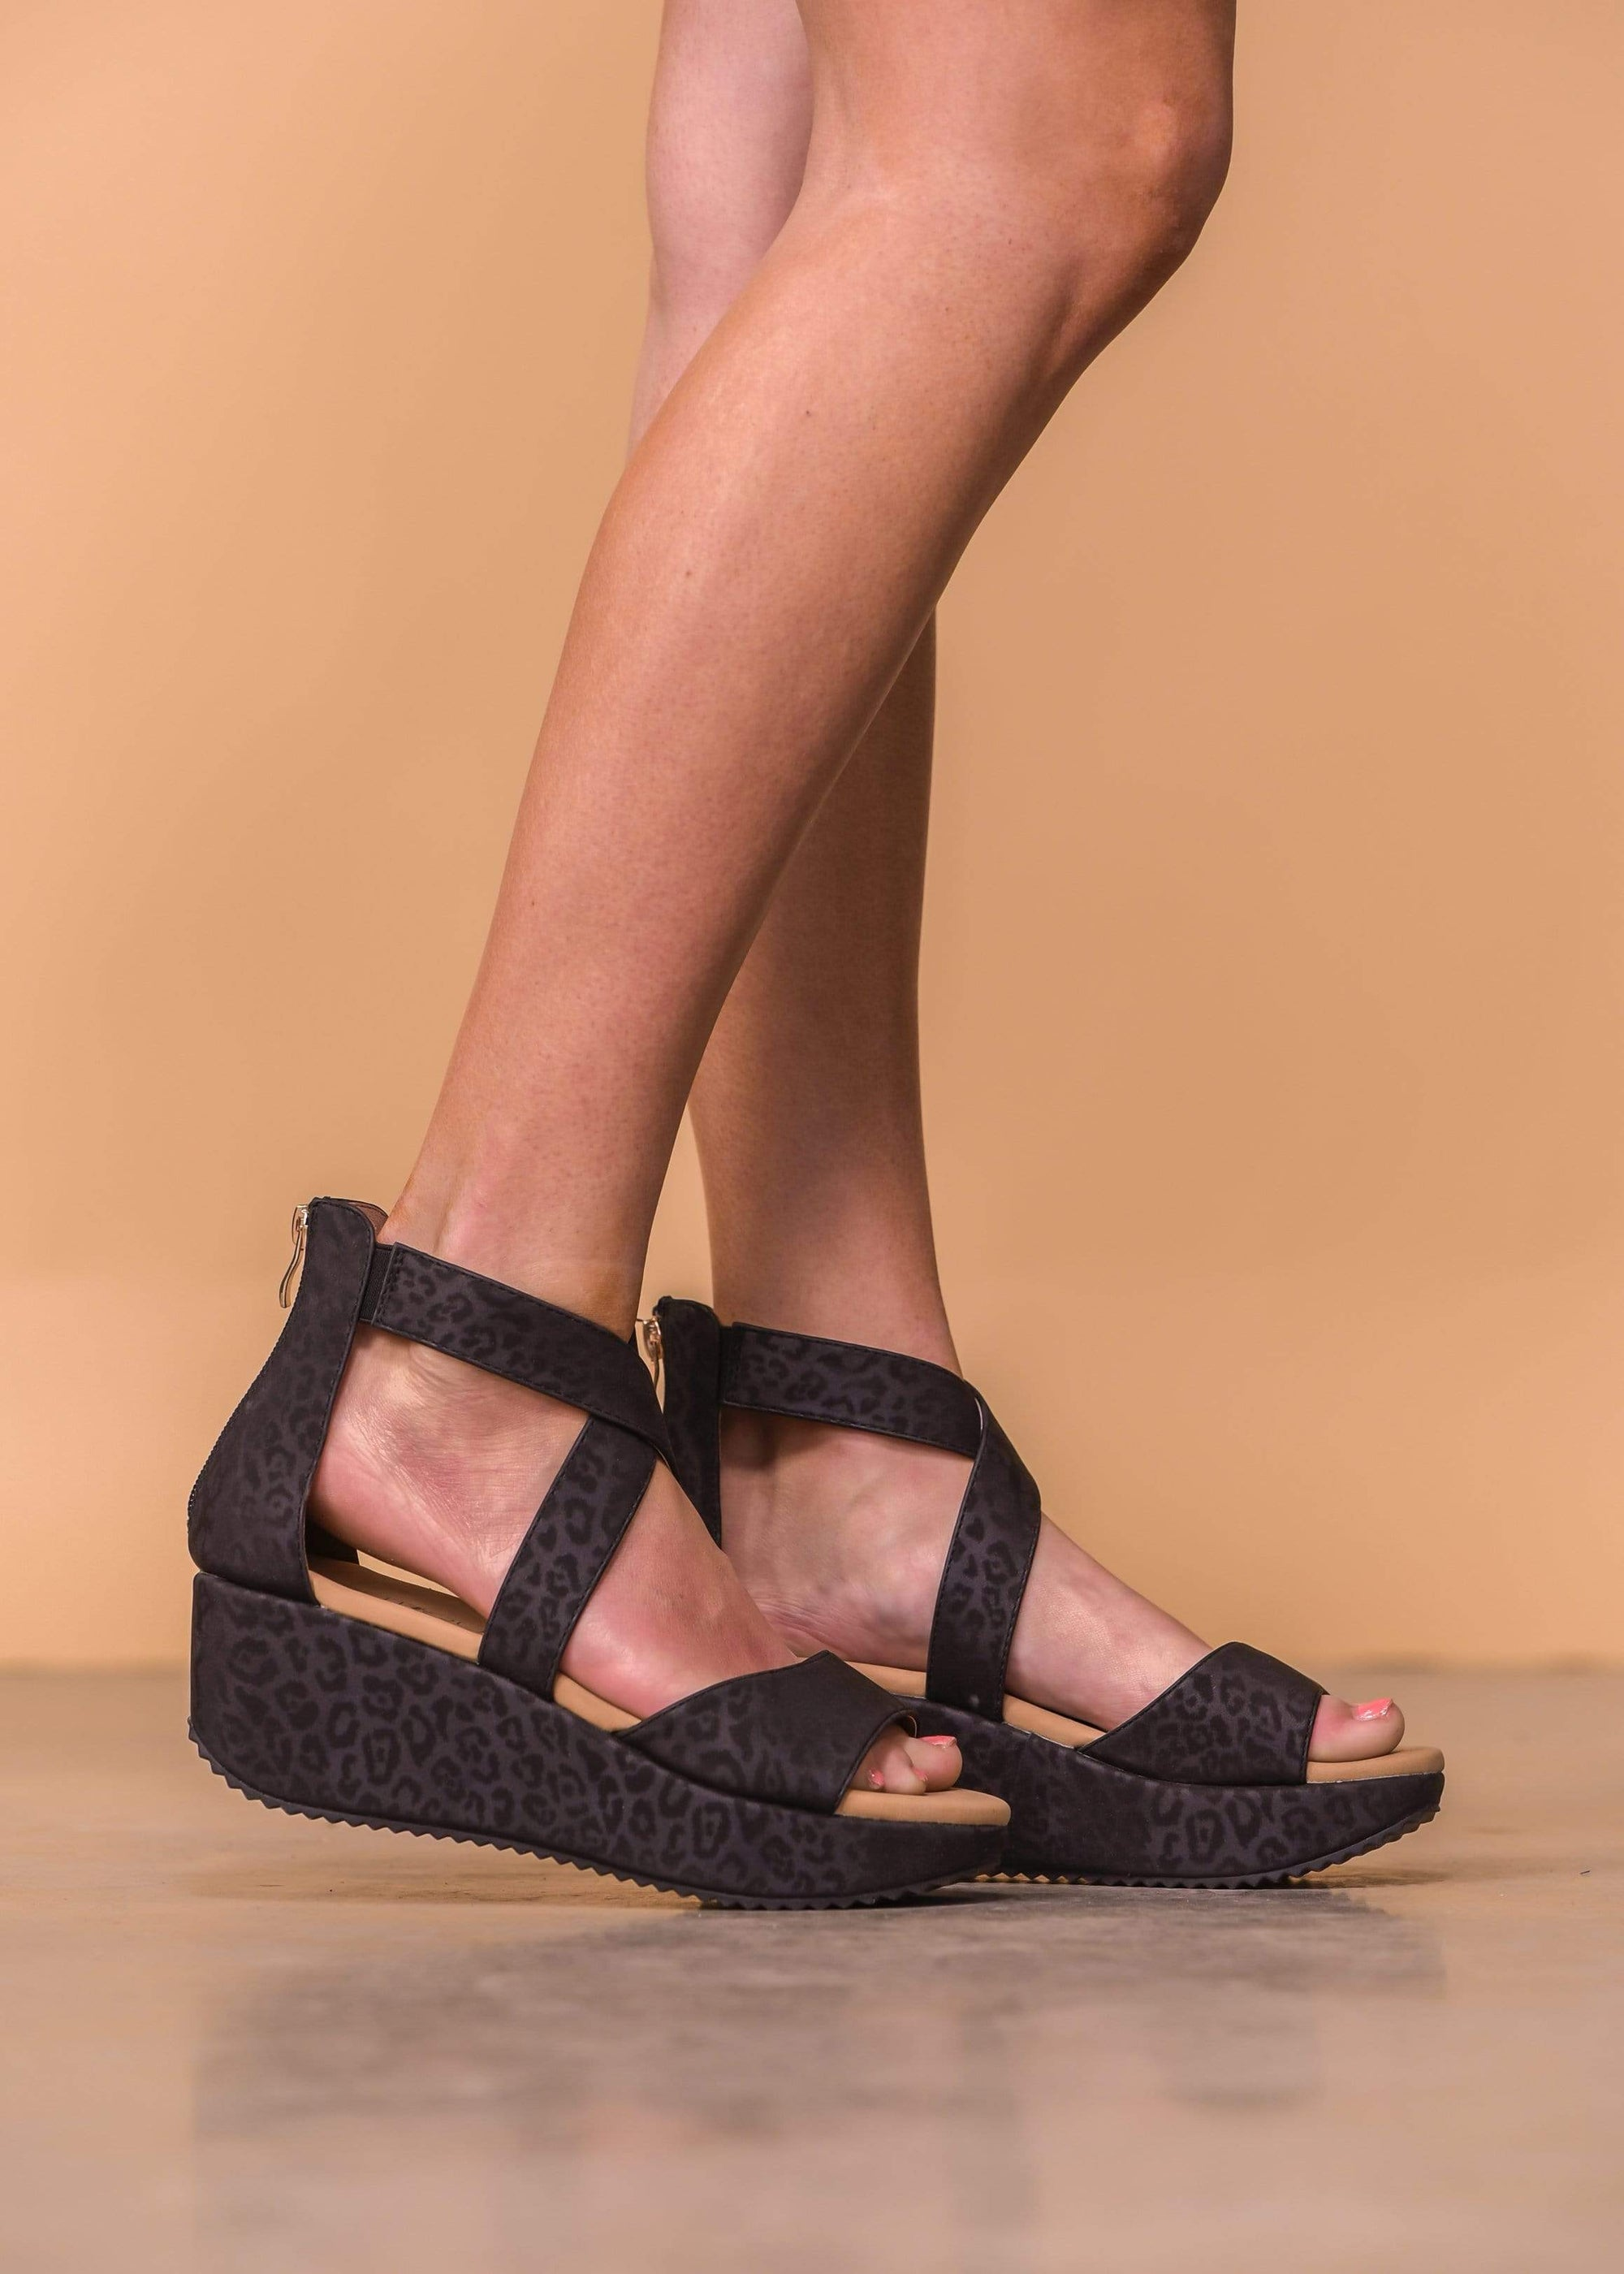 Fay Black Wedge Sandals - Leopard